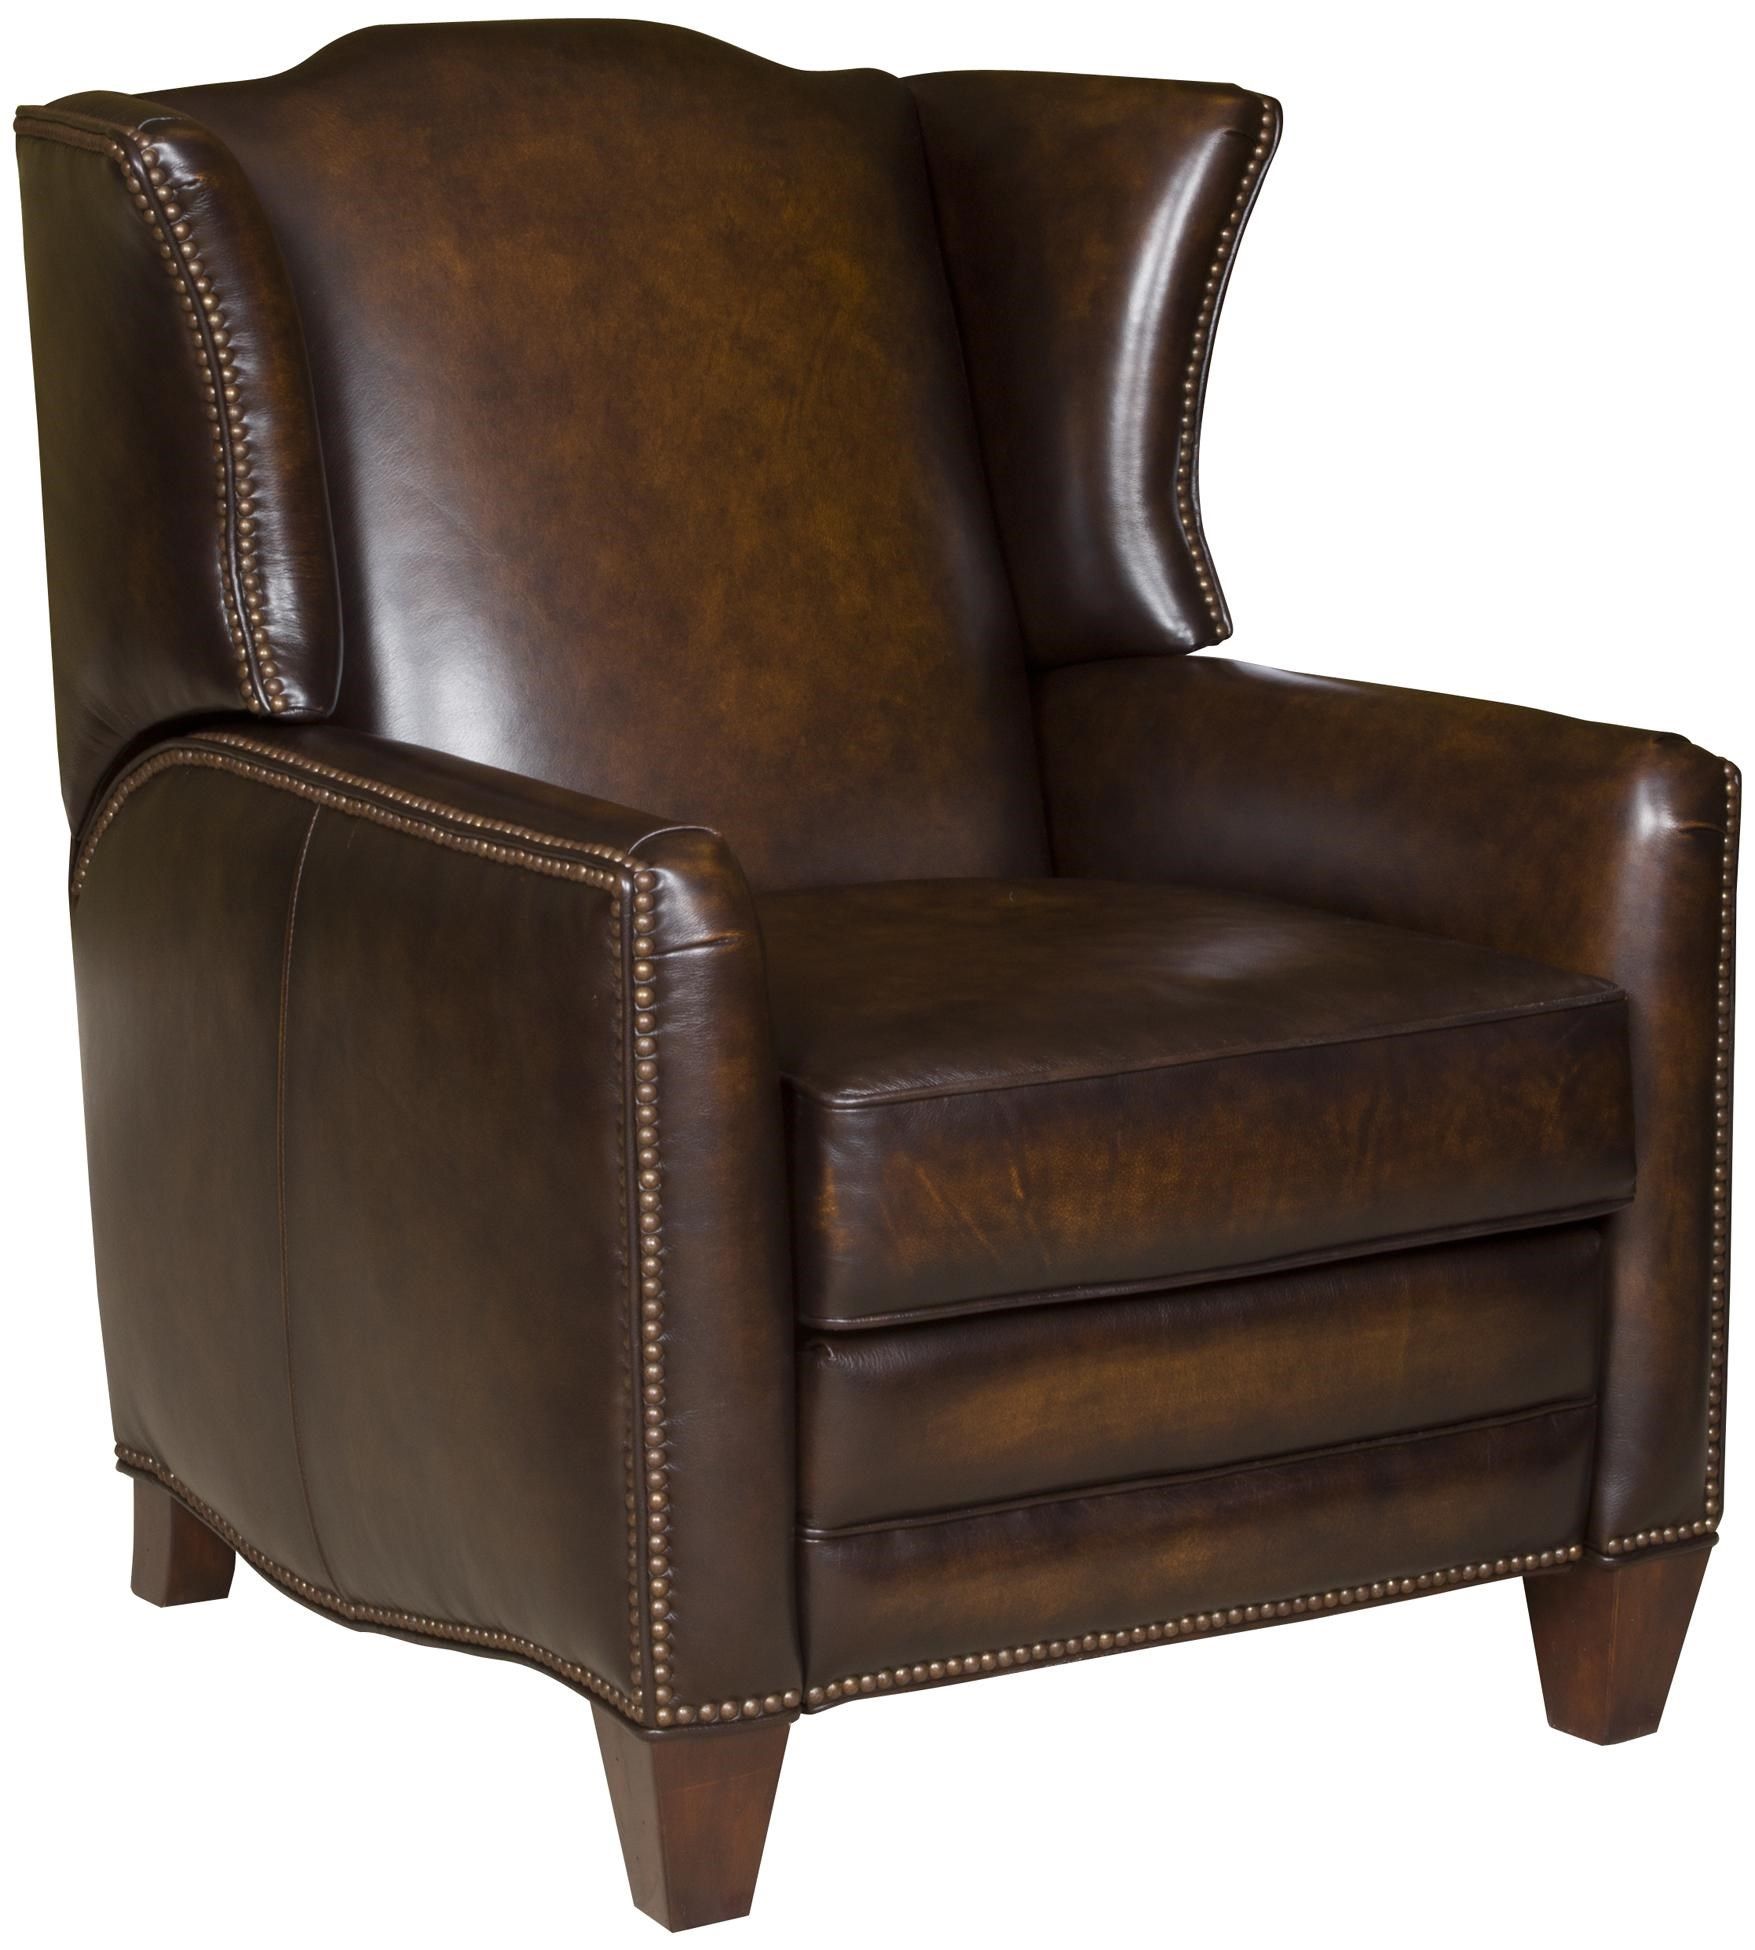 King Hickory Accent Chairs And OttomansAthens Recliner ...